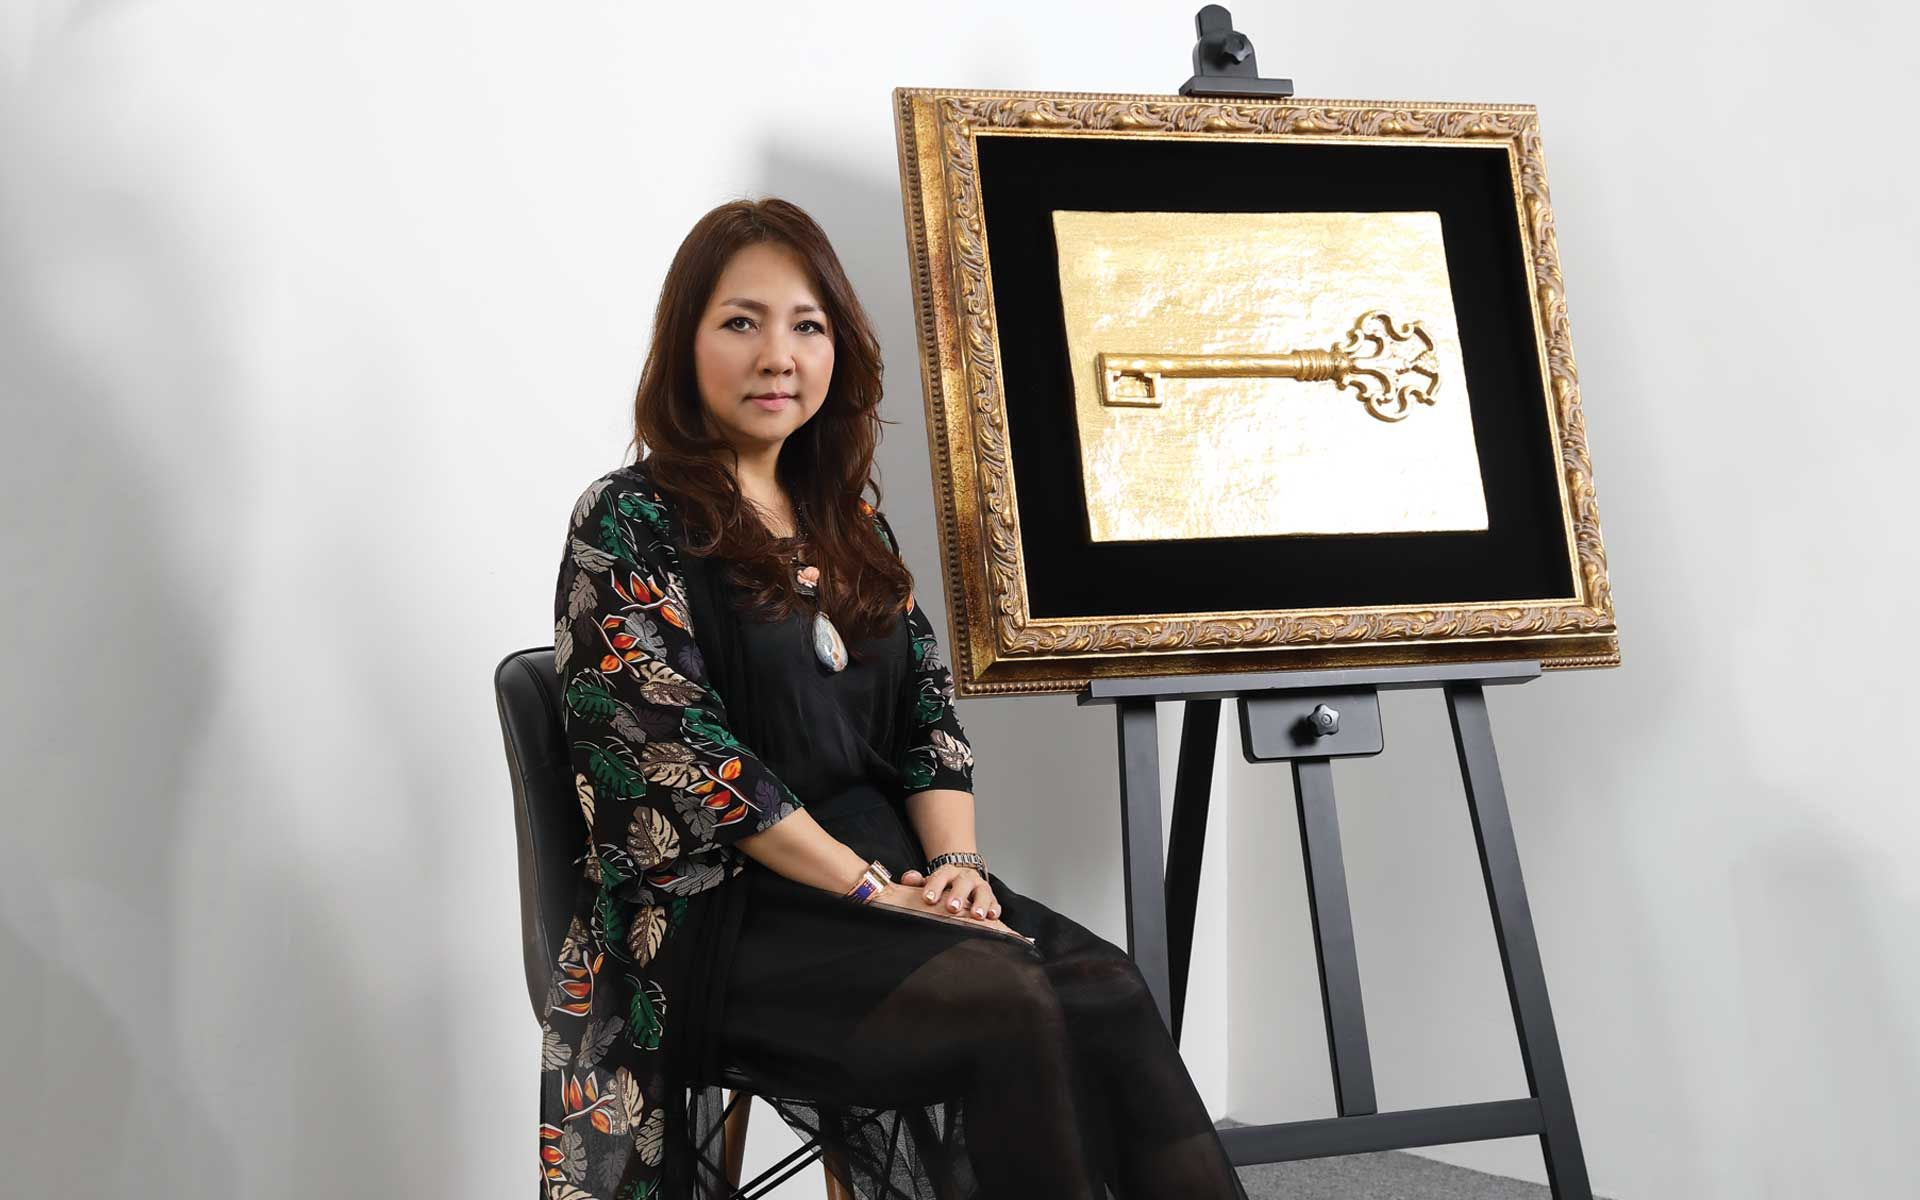 Aureo Gallery's Founder Serena Chiam On The 3 Golden Values She Upholds As A Businesswoman